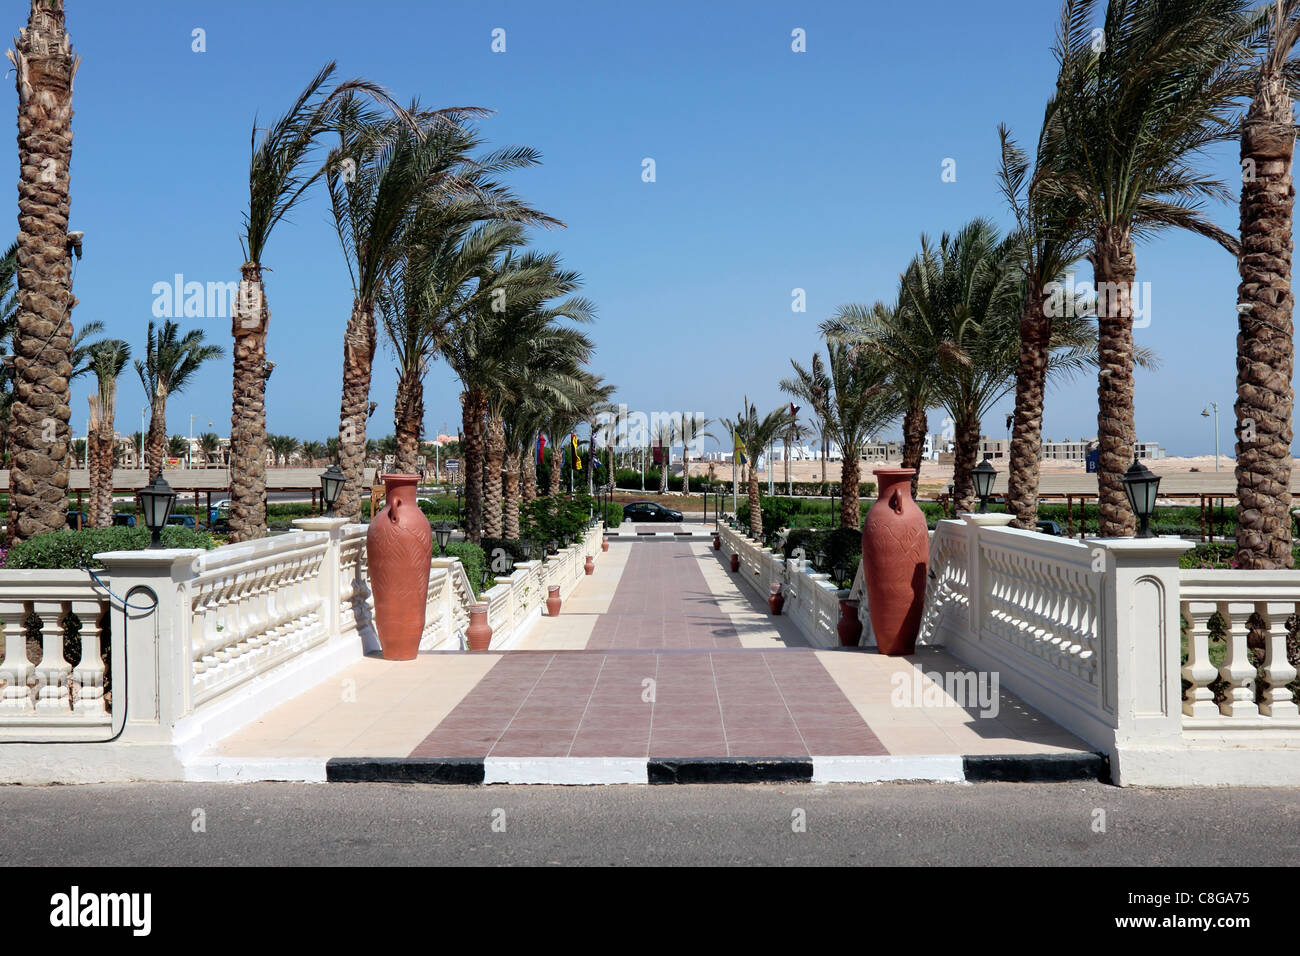 Tirana Sunrise Hotel Entrance Walkway - Stock Image